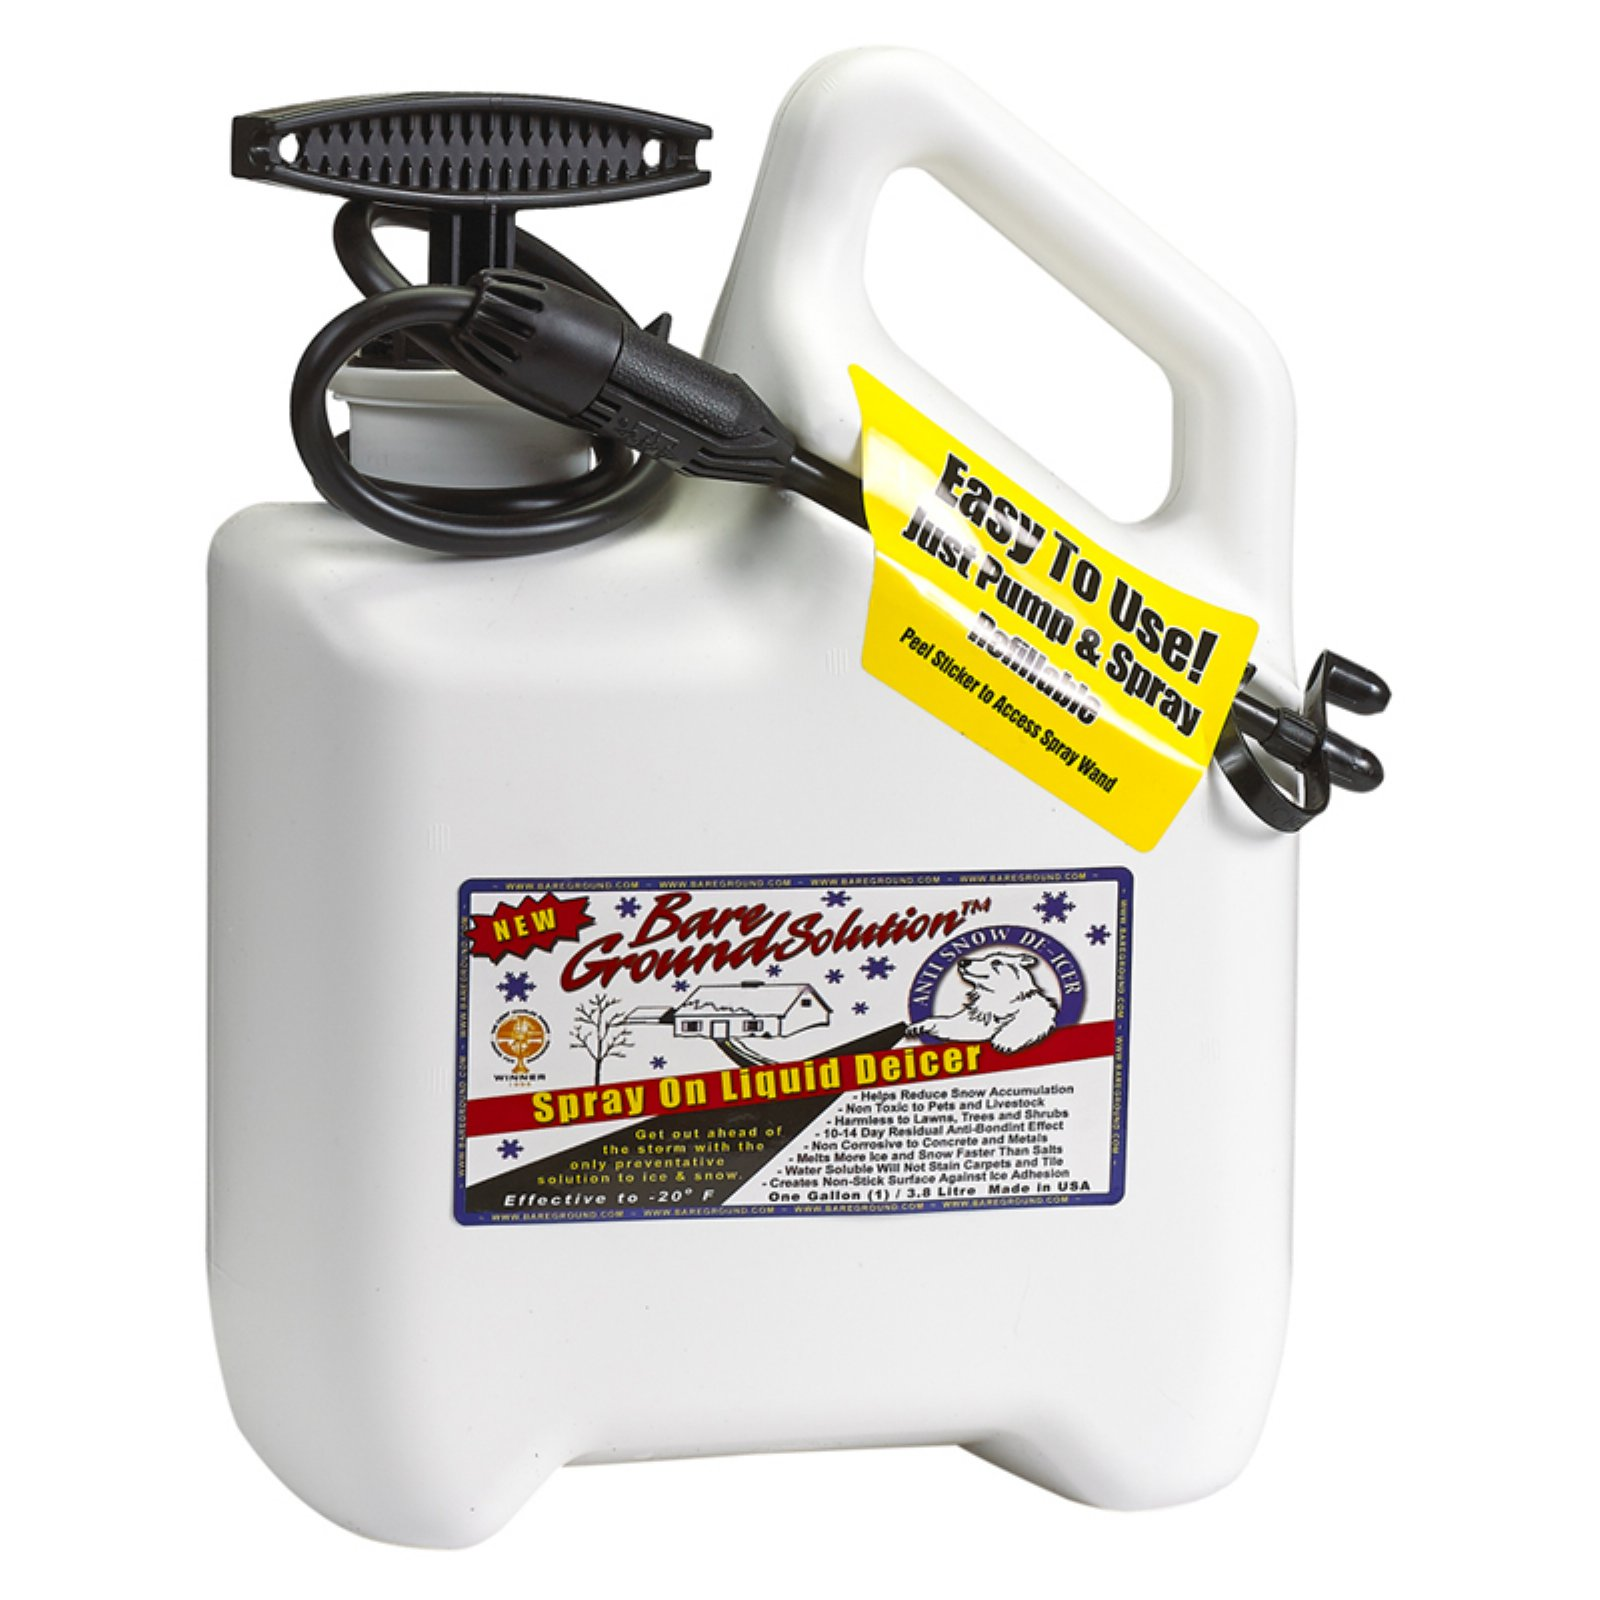 Bare Ground Deluxe System with Pump Sprayer and 1 gal Of Liquid Deicer